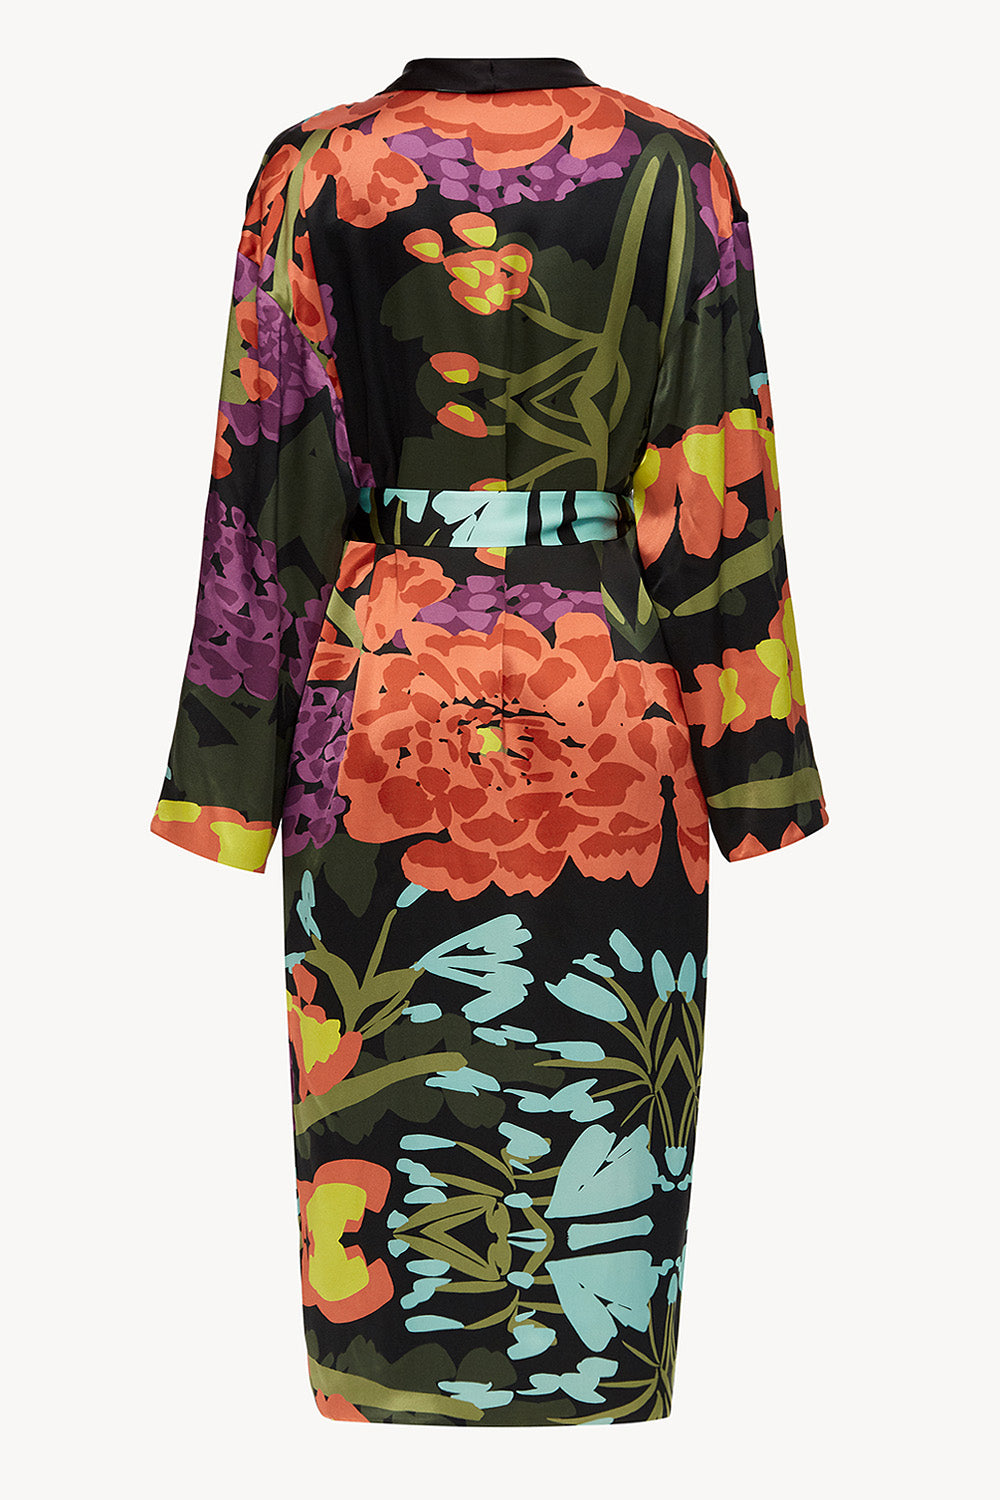 Reversible midi silk robe featuring a relaxed fit in floral black/black